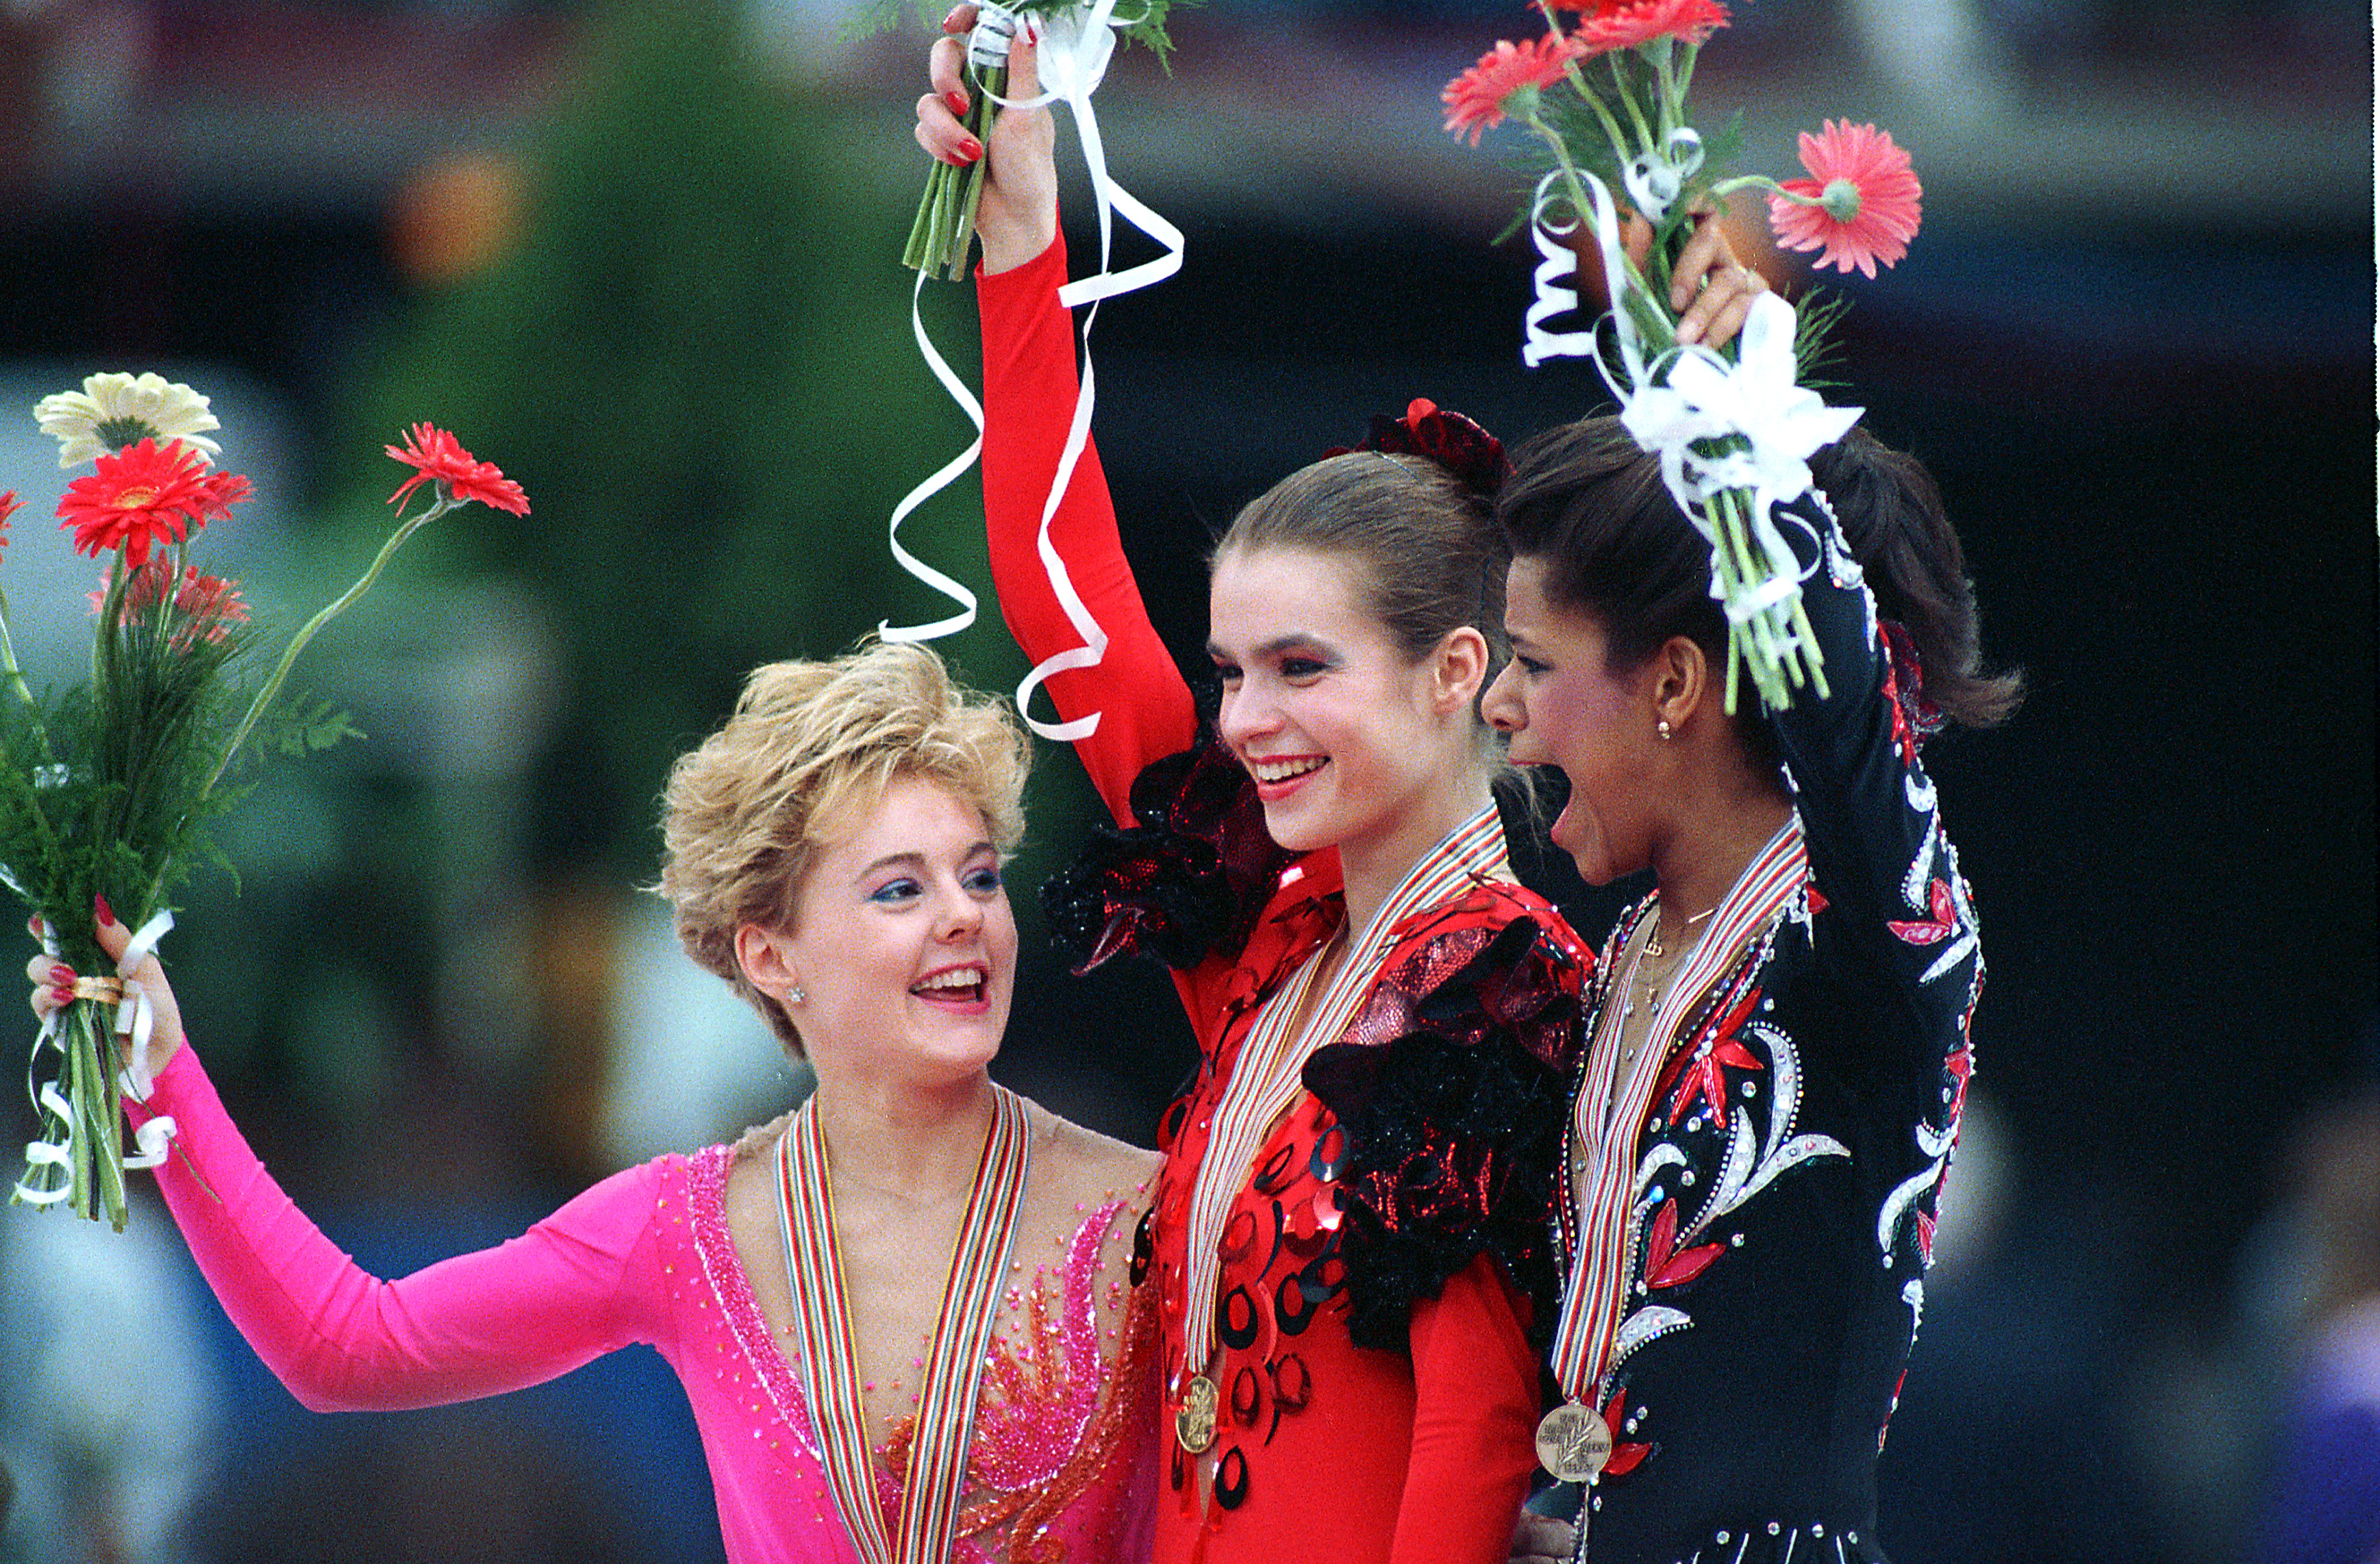 Katarina Witt of East Germany is flanked by Canadian Elizabeth Manley, left, and U.S. skater Debi Thomas during the medal ceremony following the World Figure Skating Championships in Budapest, Hungary, Saturday, March 26, 1988. AP Photo/Dave Caulkin.